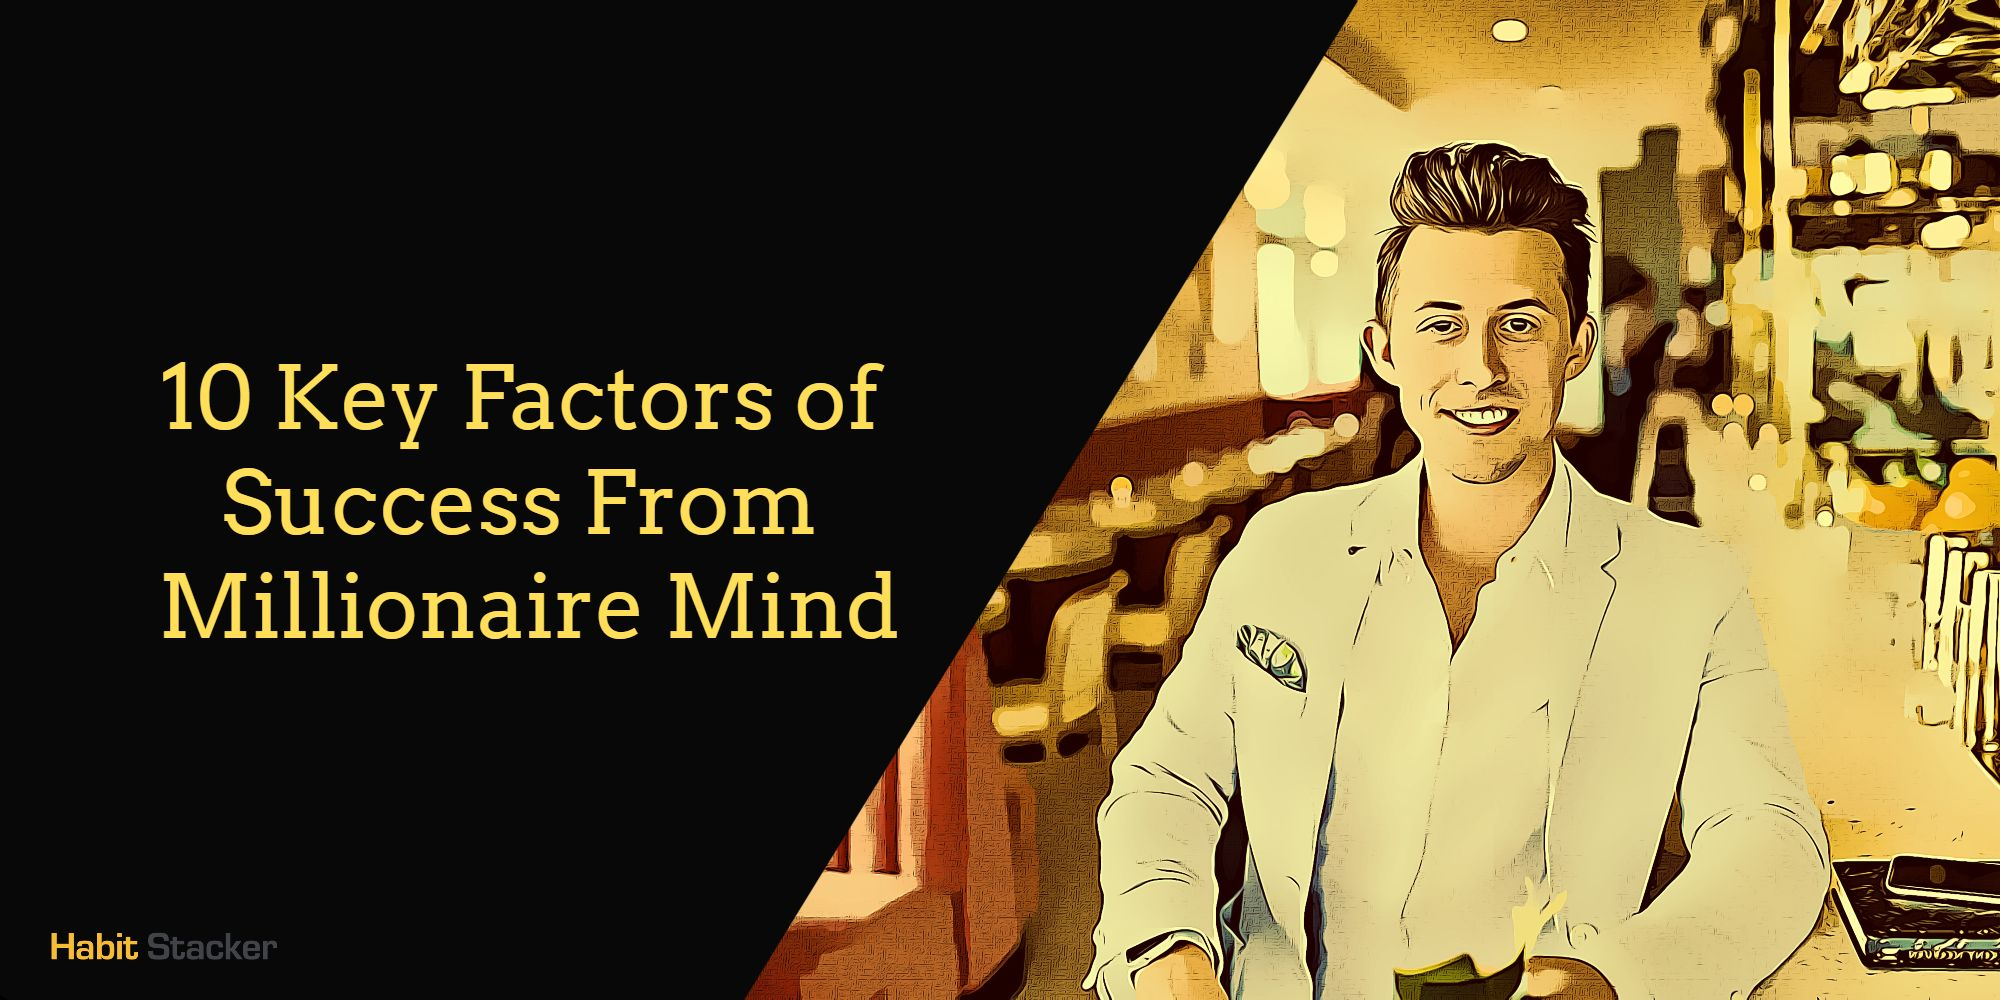 10 Key Factors of Success From Millionaire Mind